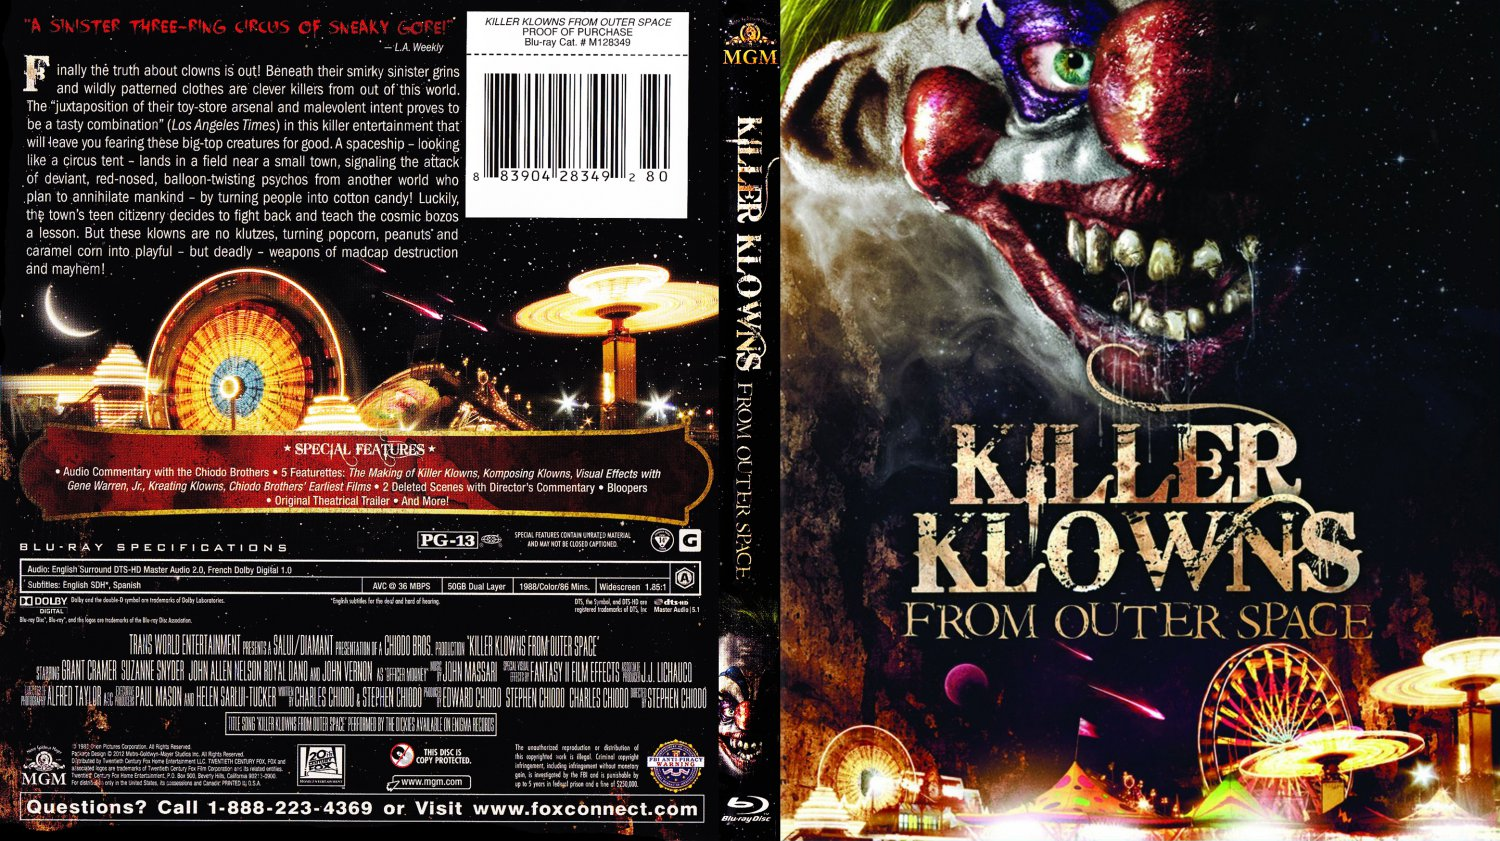 The gallery for the return of the killer klowns from for Killer klowns 2